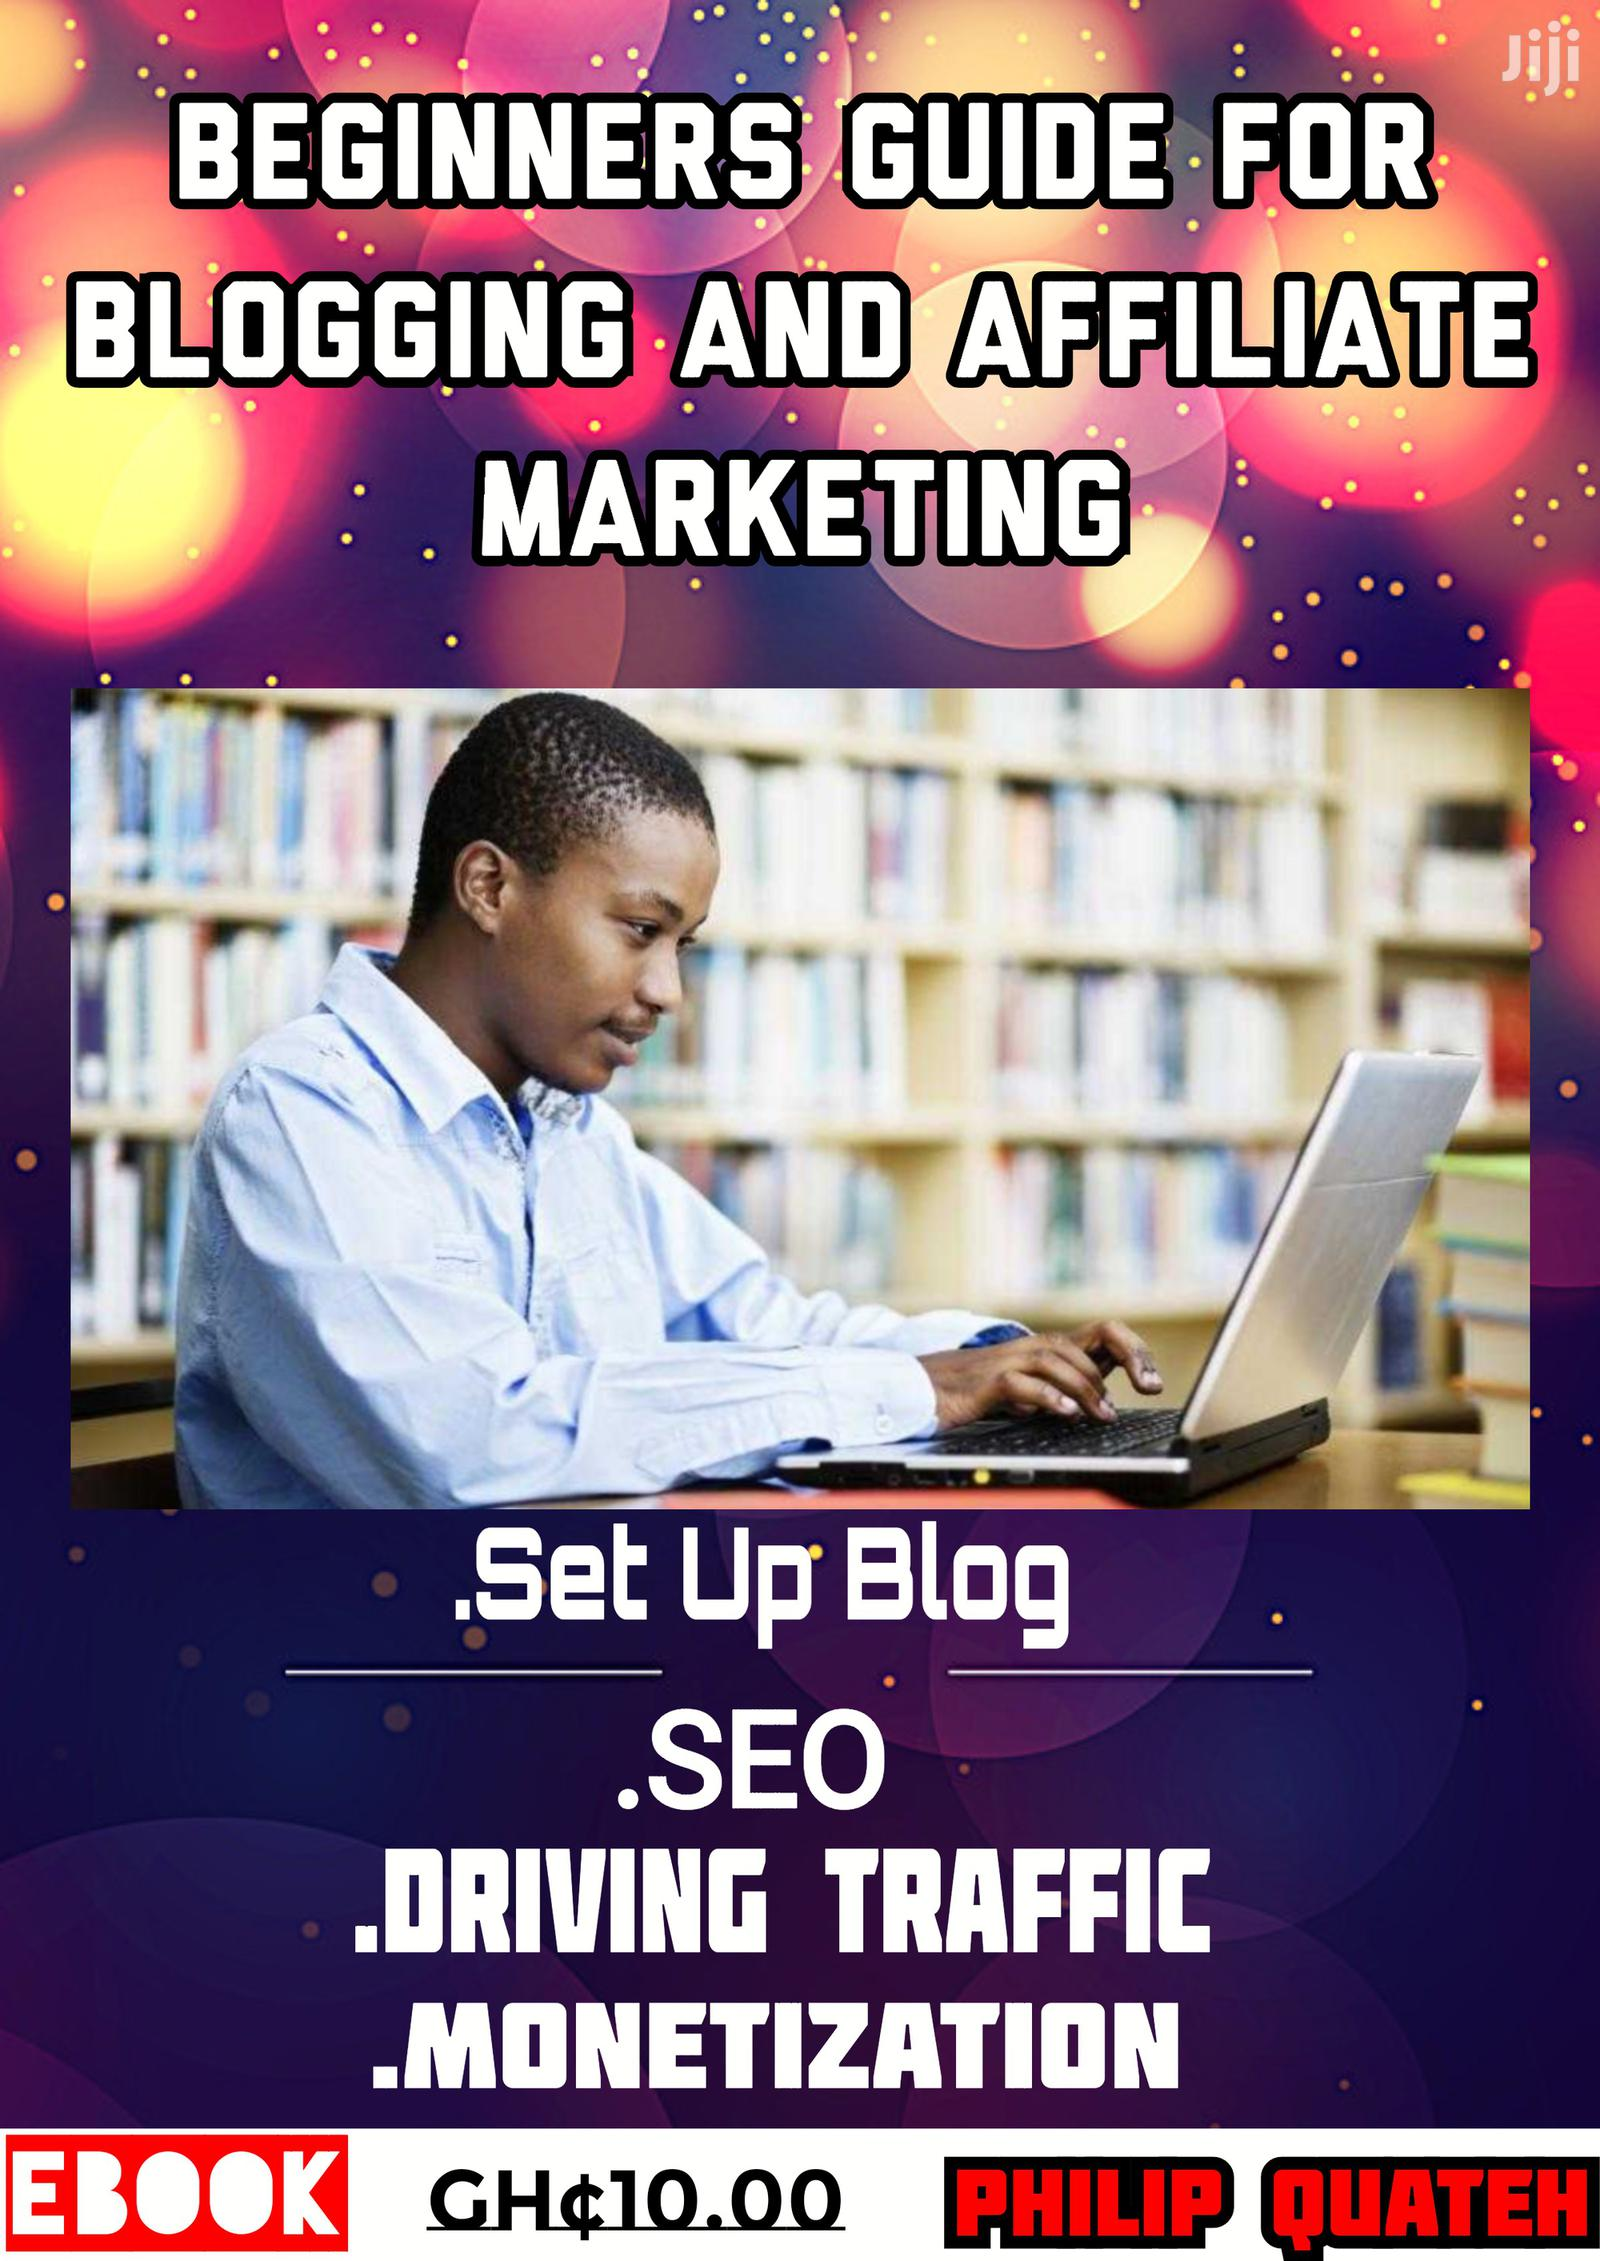 Archive: Beginners Guide for Blogging and Affiliate Marketing